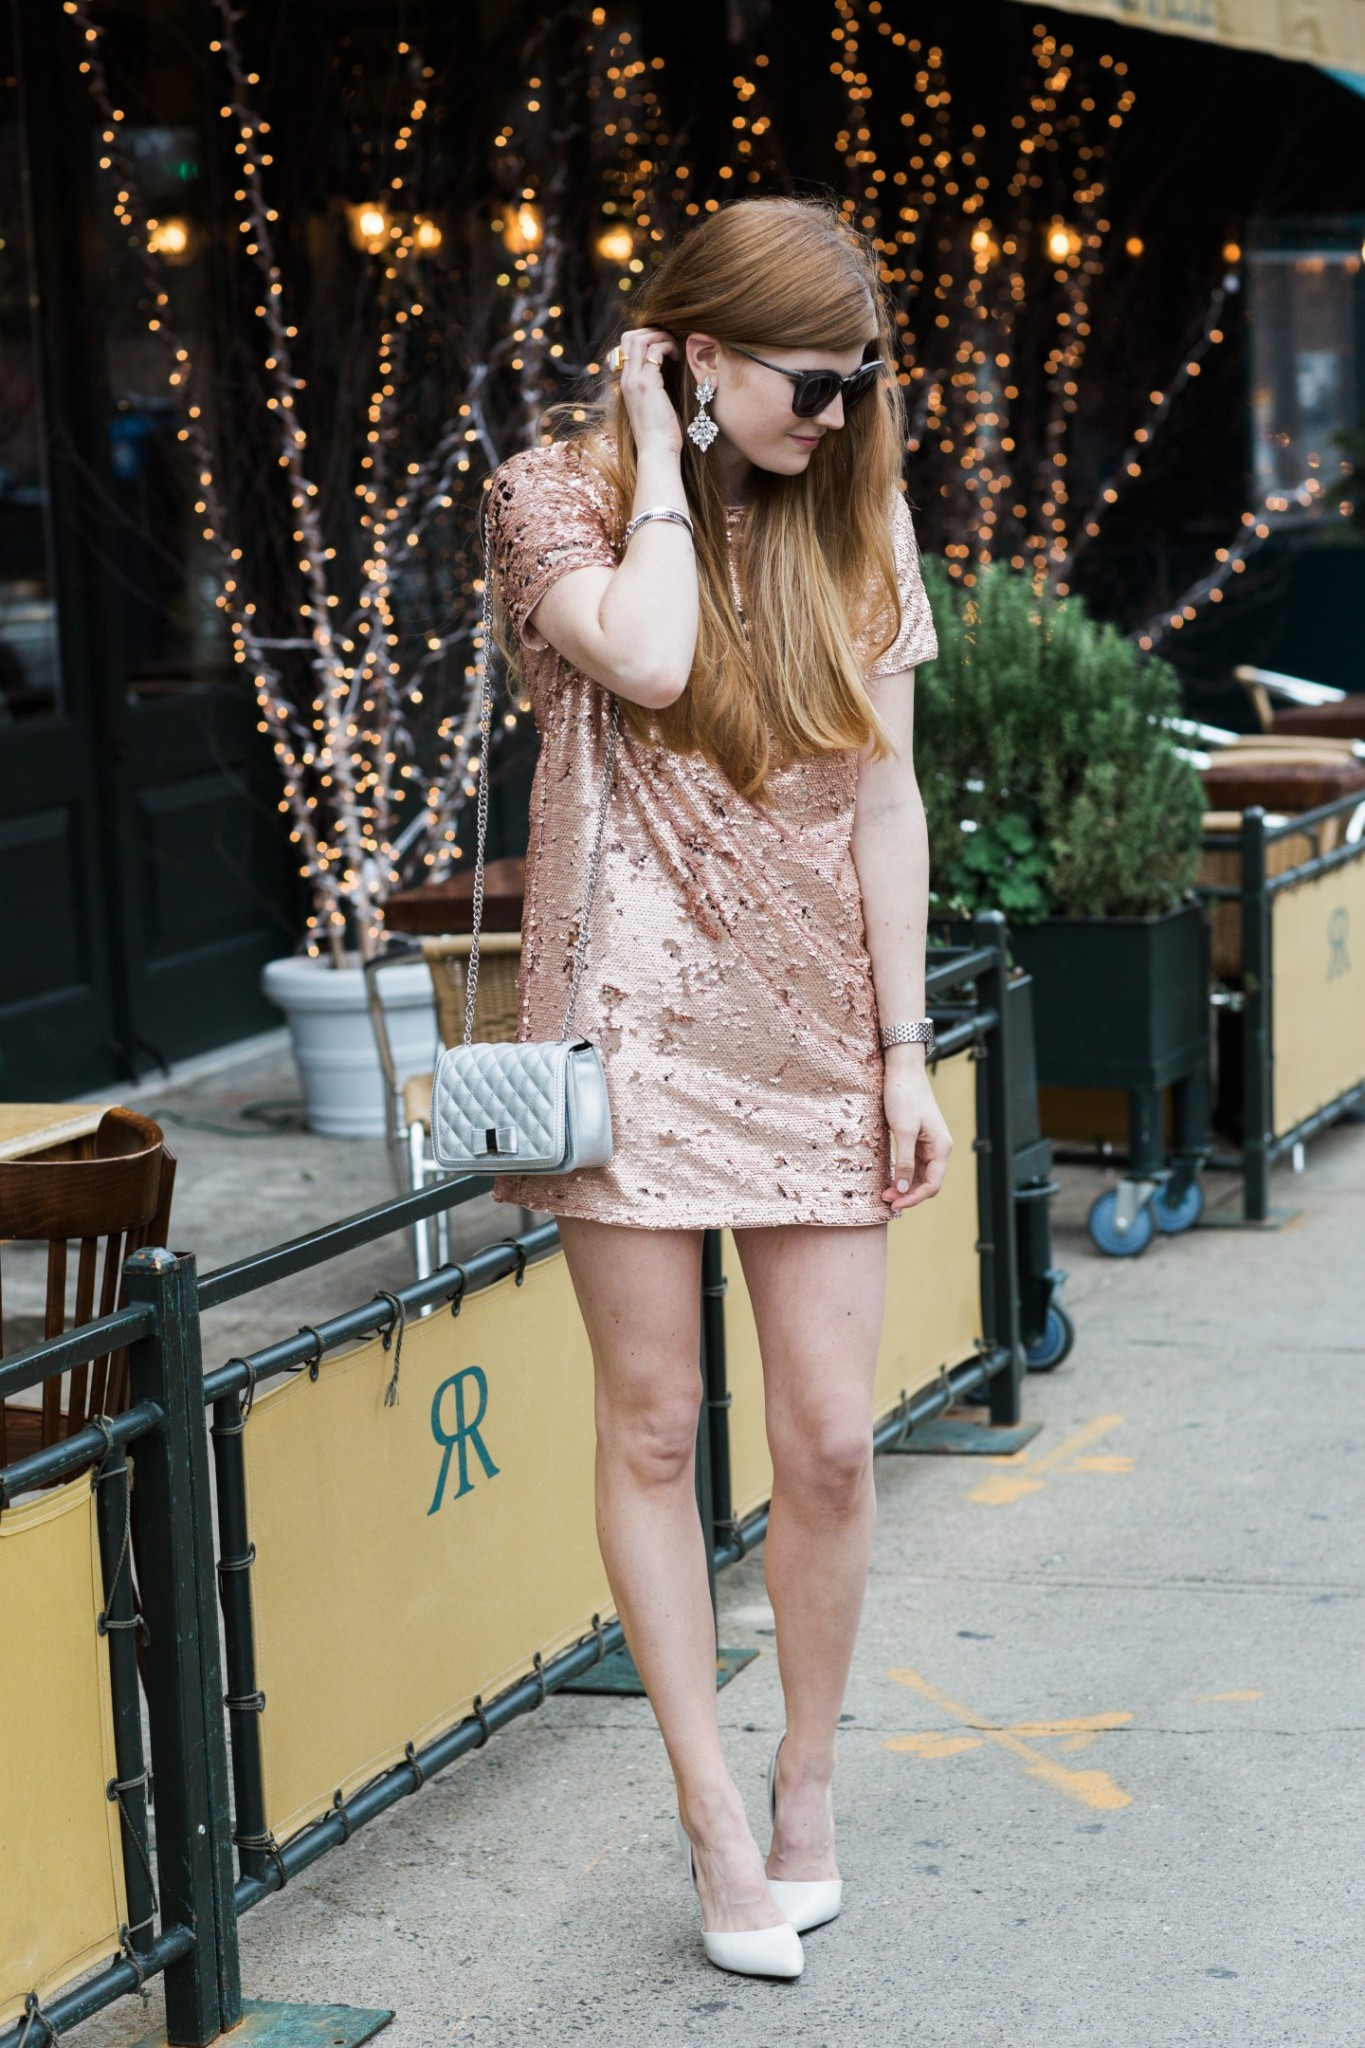 Top London fashion blogger, Mollie Moore, features 5 holiday looks to recreate year after year: picture of a woman wearing a sequin mini dress, black clutch, aviator sunglasses and metallic heels: pink sequin mini dress, white heels and teardrop earrings